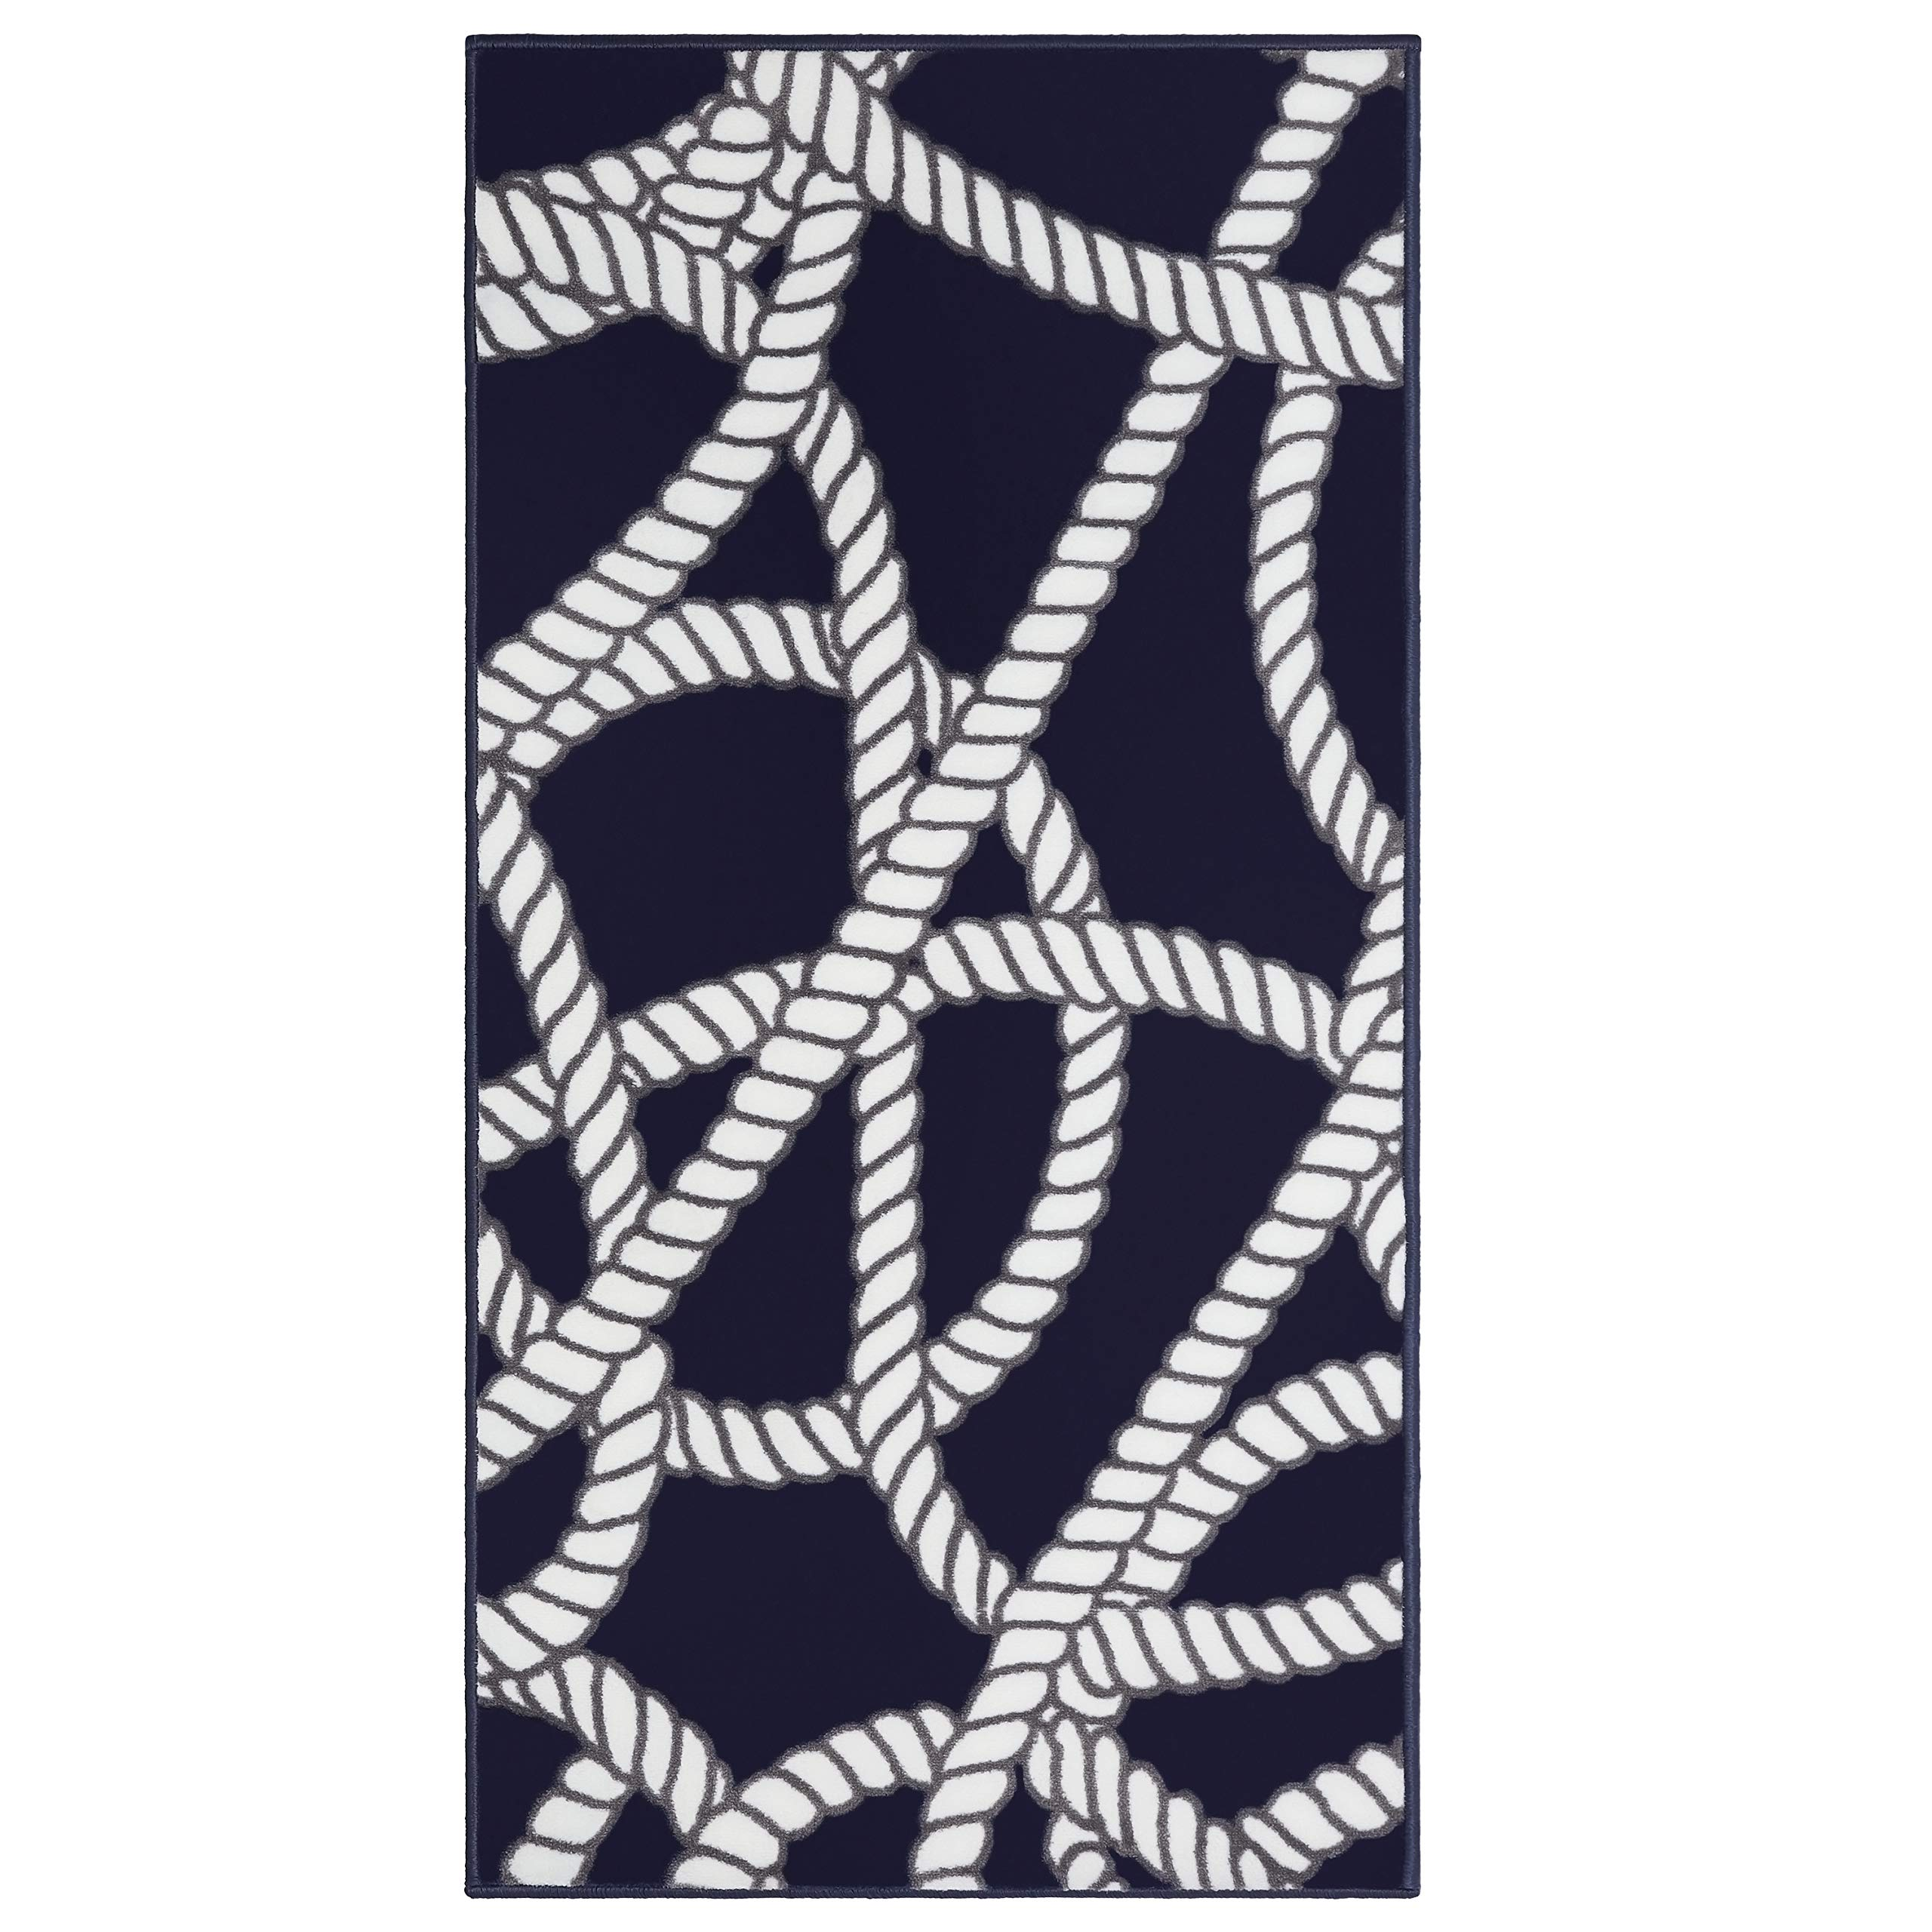 Evolur Home Belmar Nautical Nursery Rug/Bedroom/Livingroom/BabyPlaymat/ChildrensRug/PlayRug/KidsRug/Floormat 55'x31.5'in Navy with White Border by Evolur